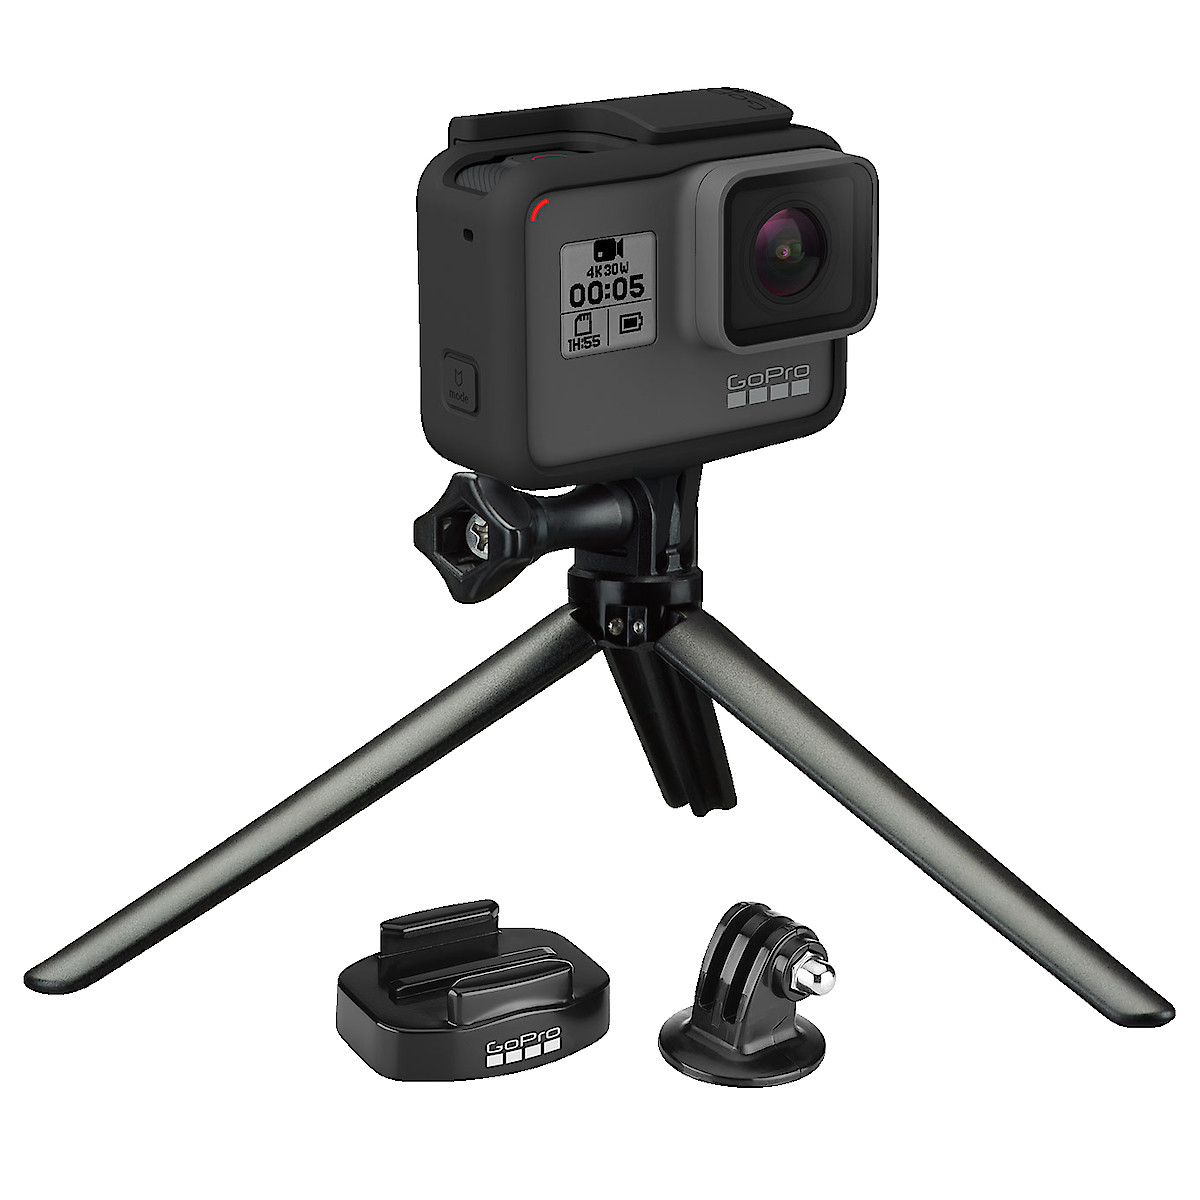 Adaptersats GoPro Tripod Mounts